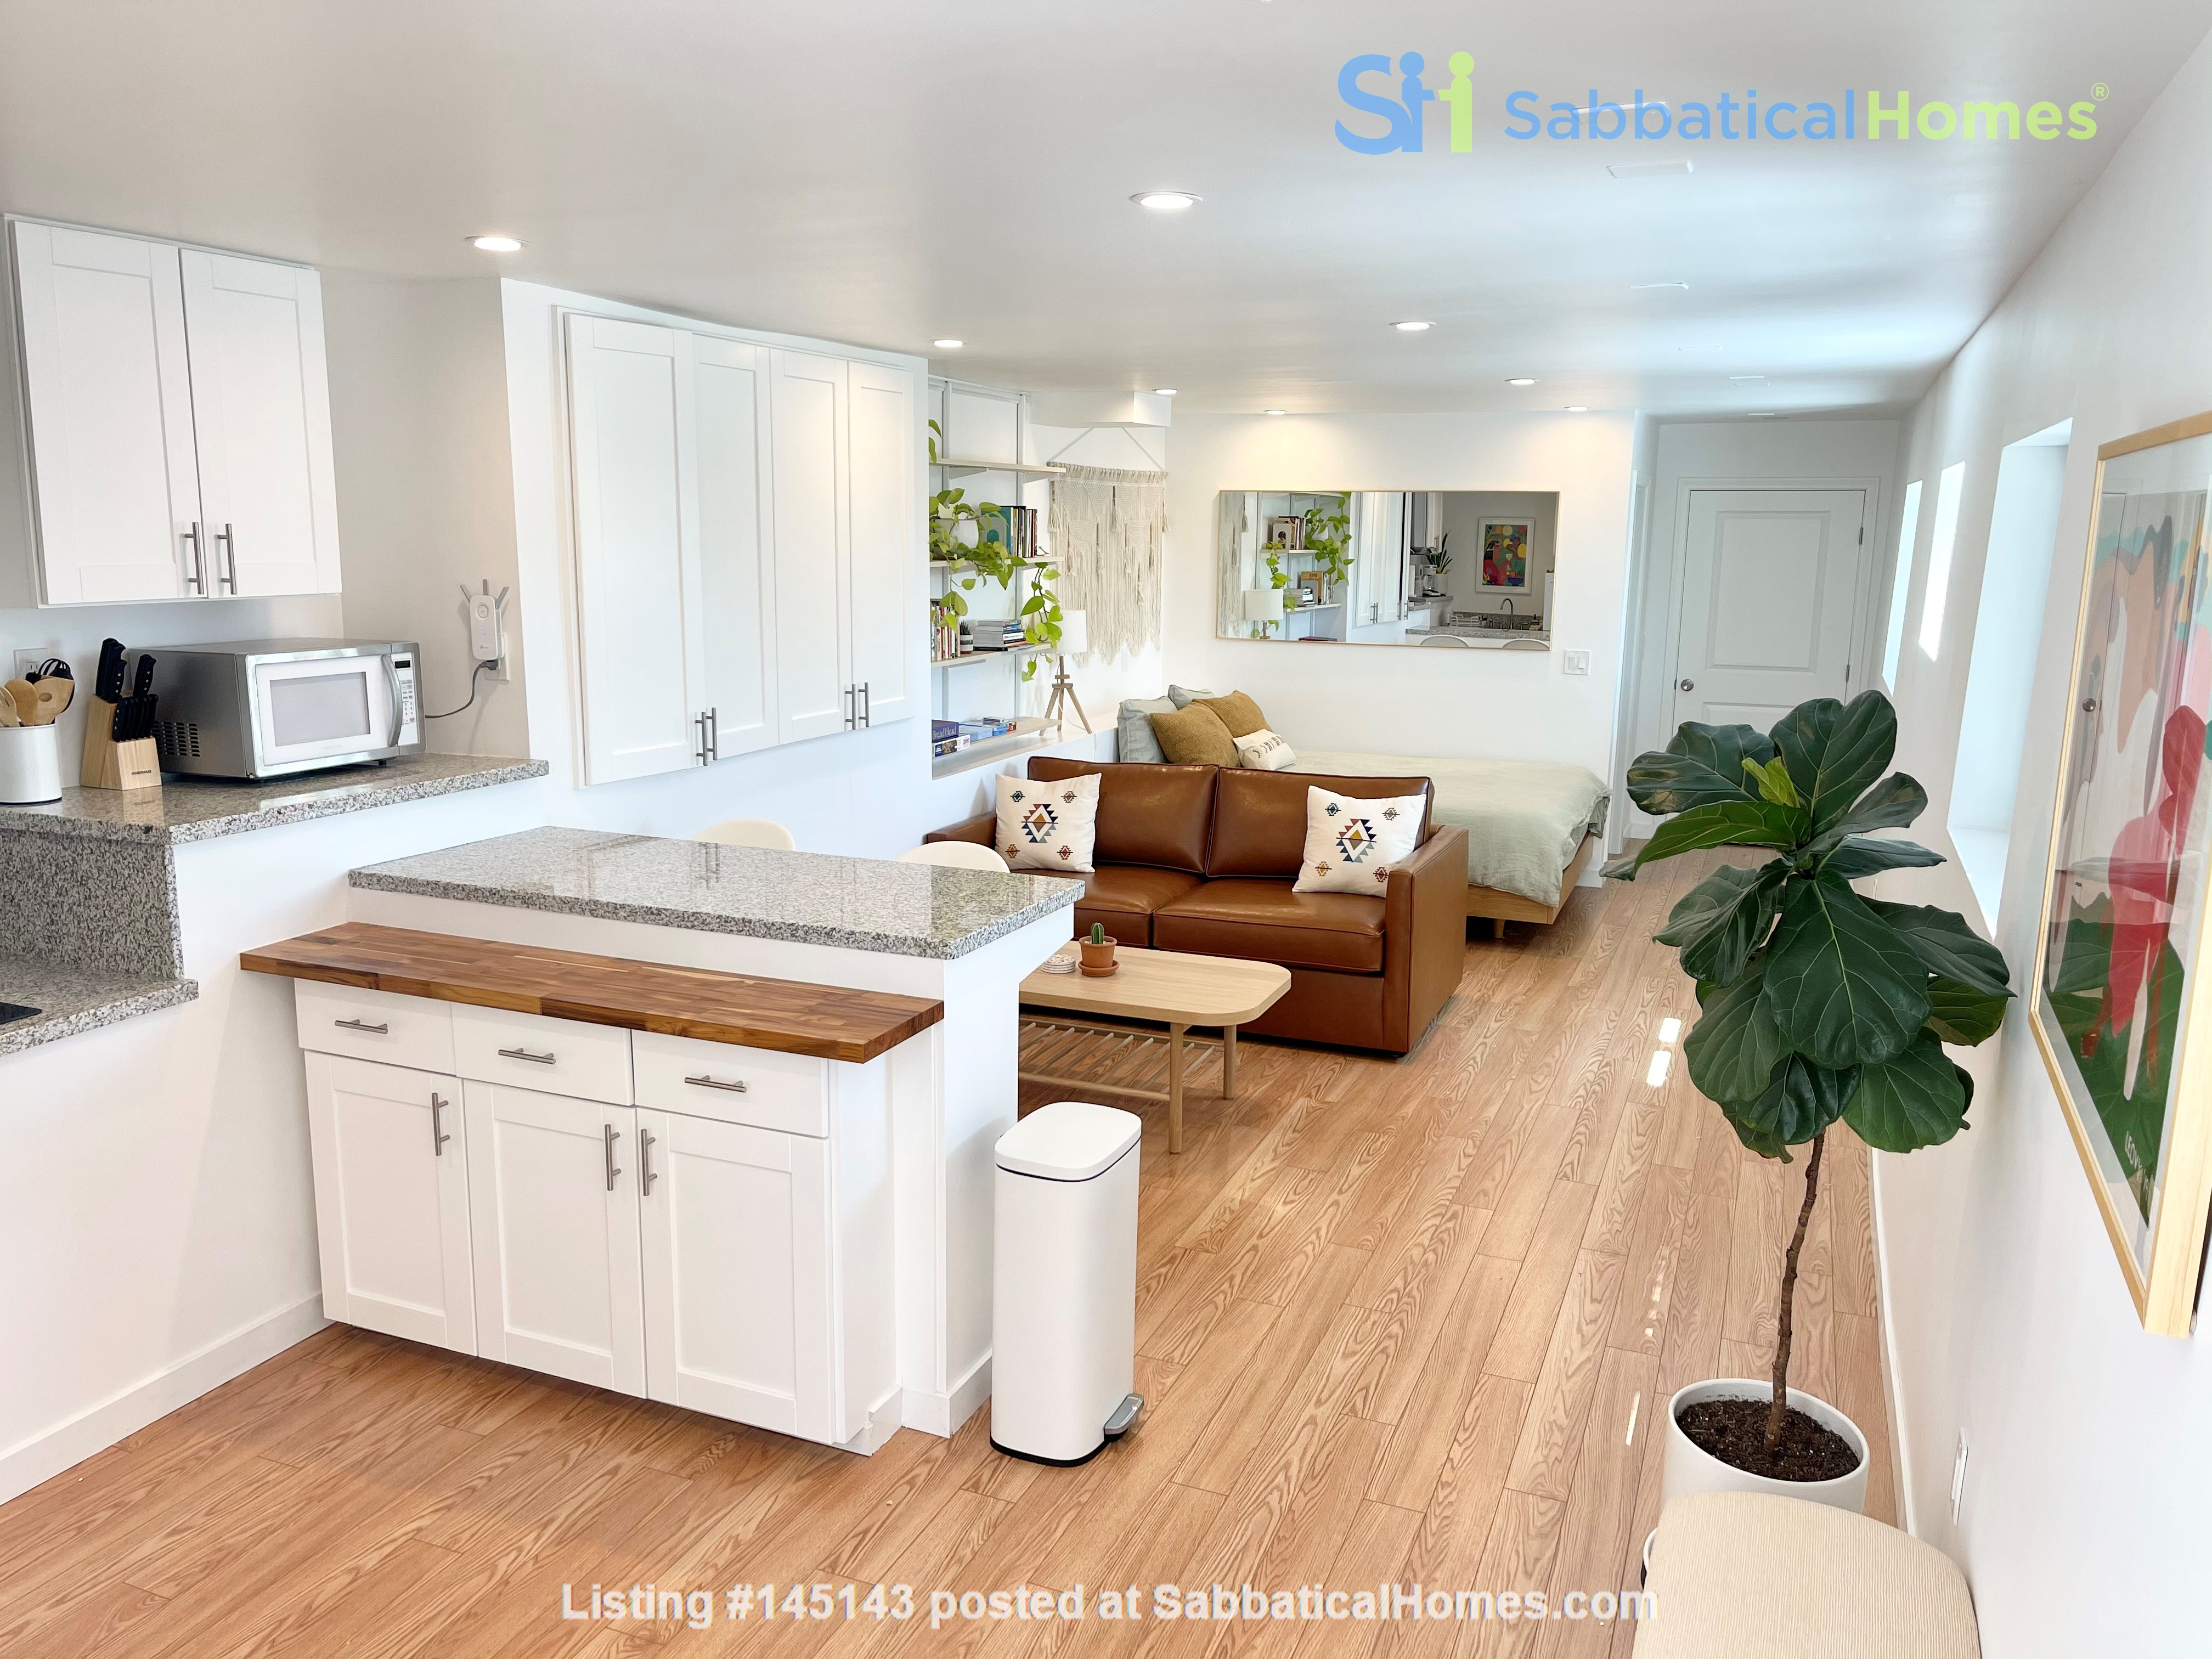 NEW Studio with Stunning L.A. Views! Home Rental in Los Angeles, California, United States 1